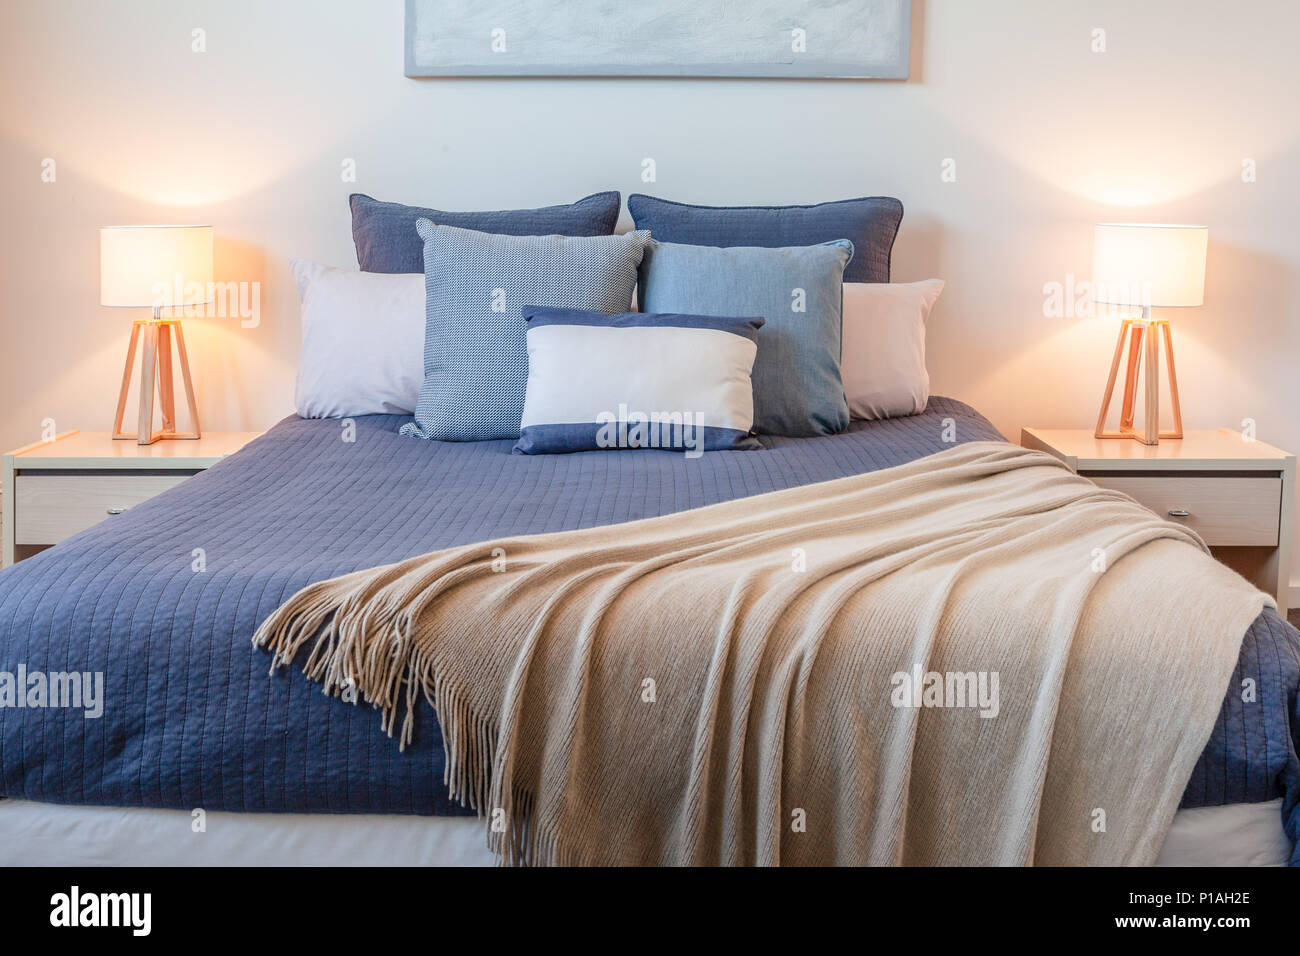 Bedding Cuscini.Beautiful Arrangement Of Pillows On Bed In A Bedroom With Bedside